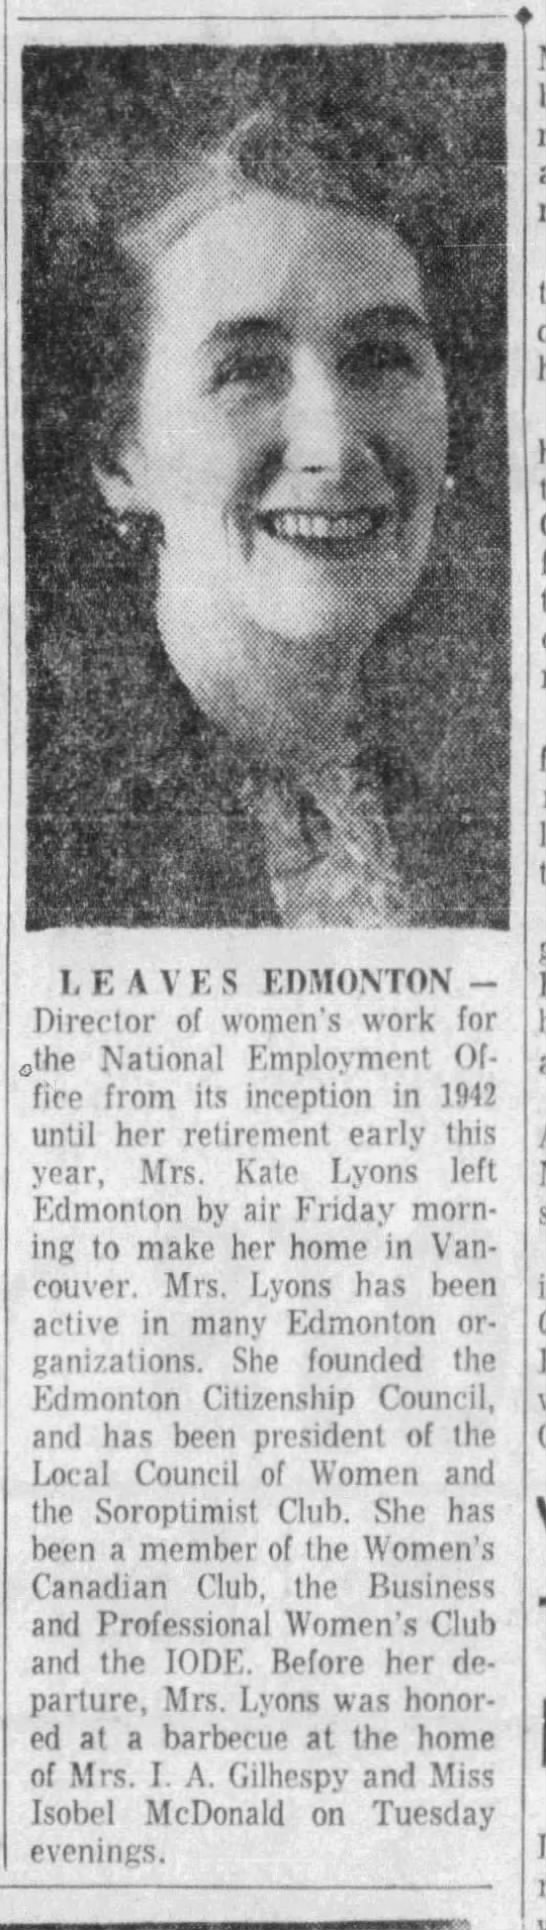 Lyons, Kate - The Edmonton Journal, August 5, 1960, Page 17 - article.jpg